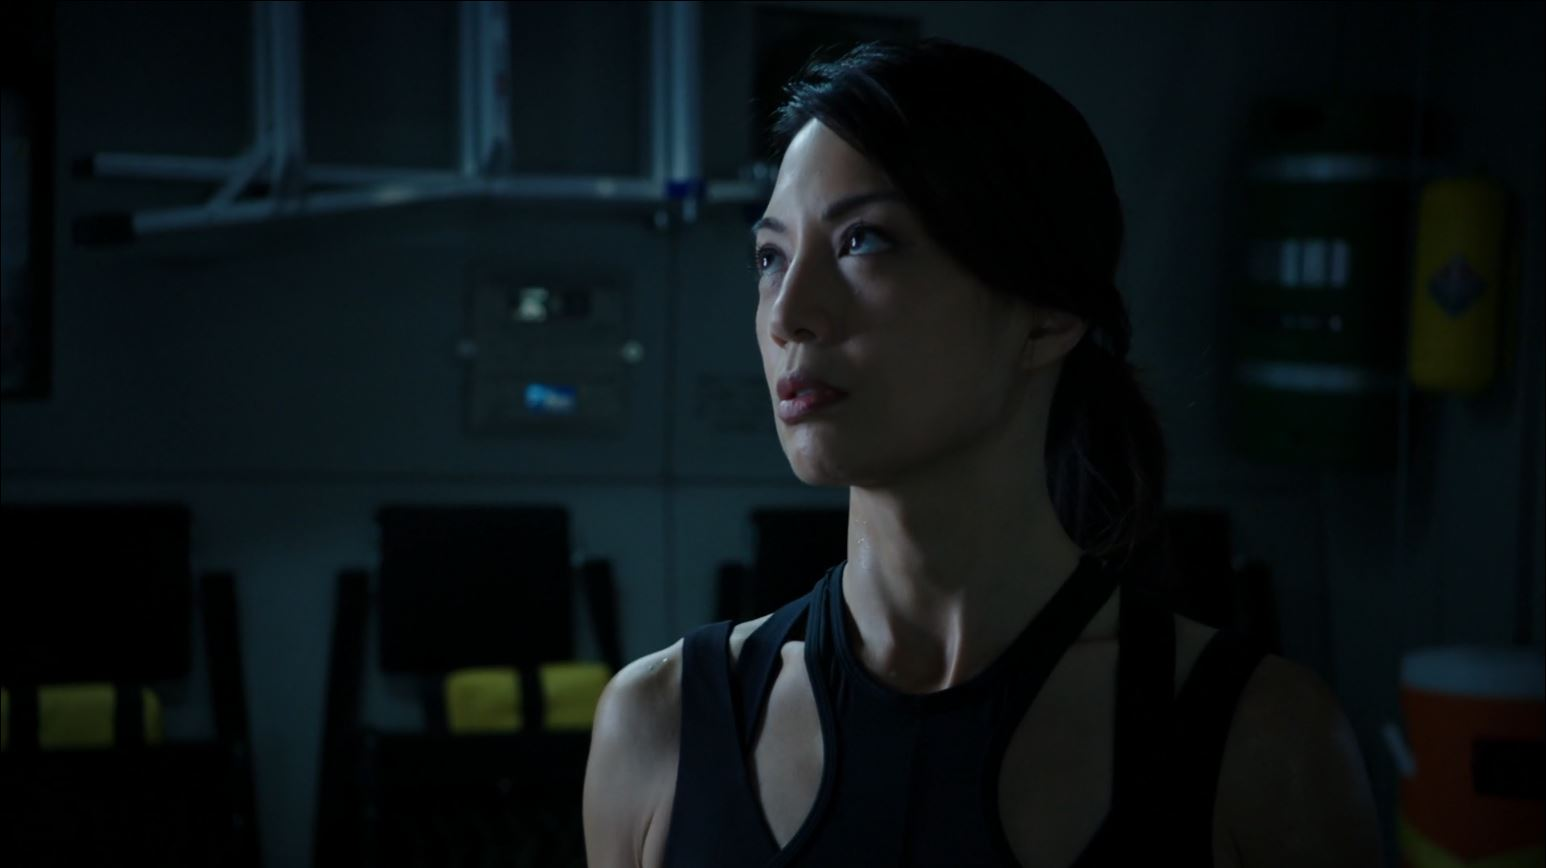 Agents of SHIELD - Ming-Na Wen as Melinda May